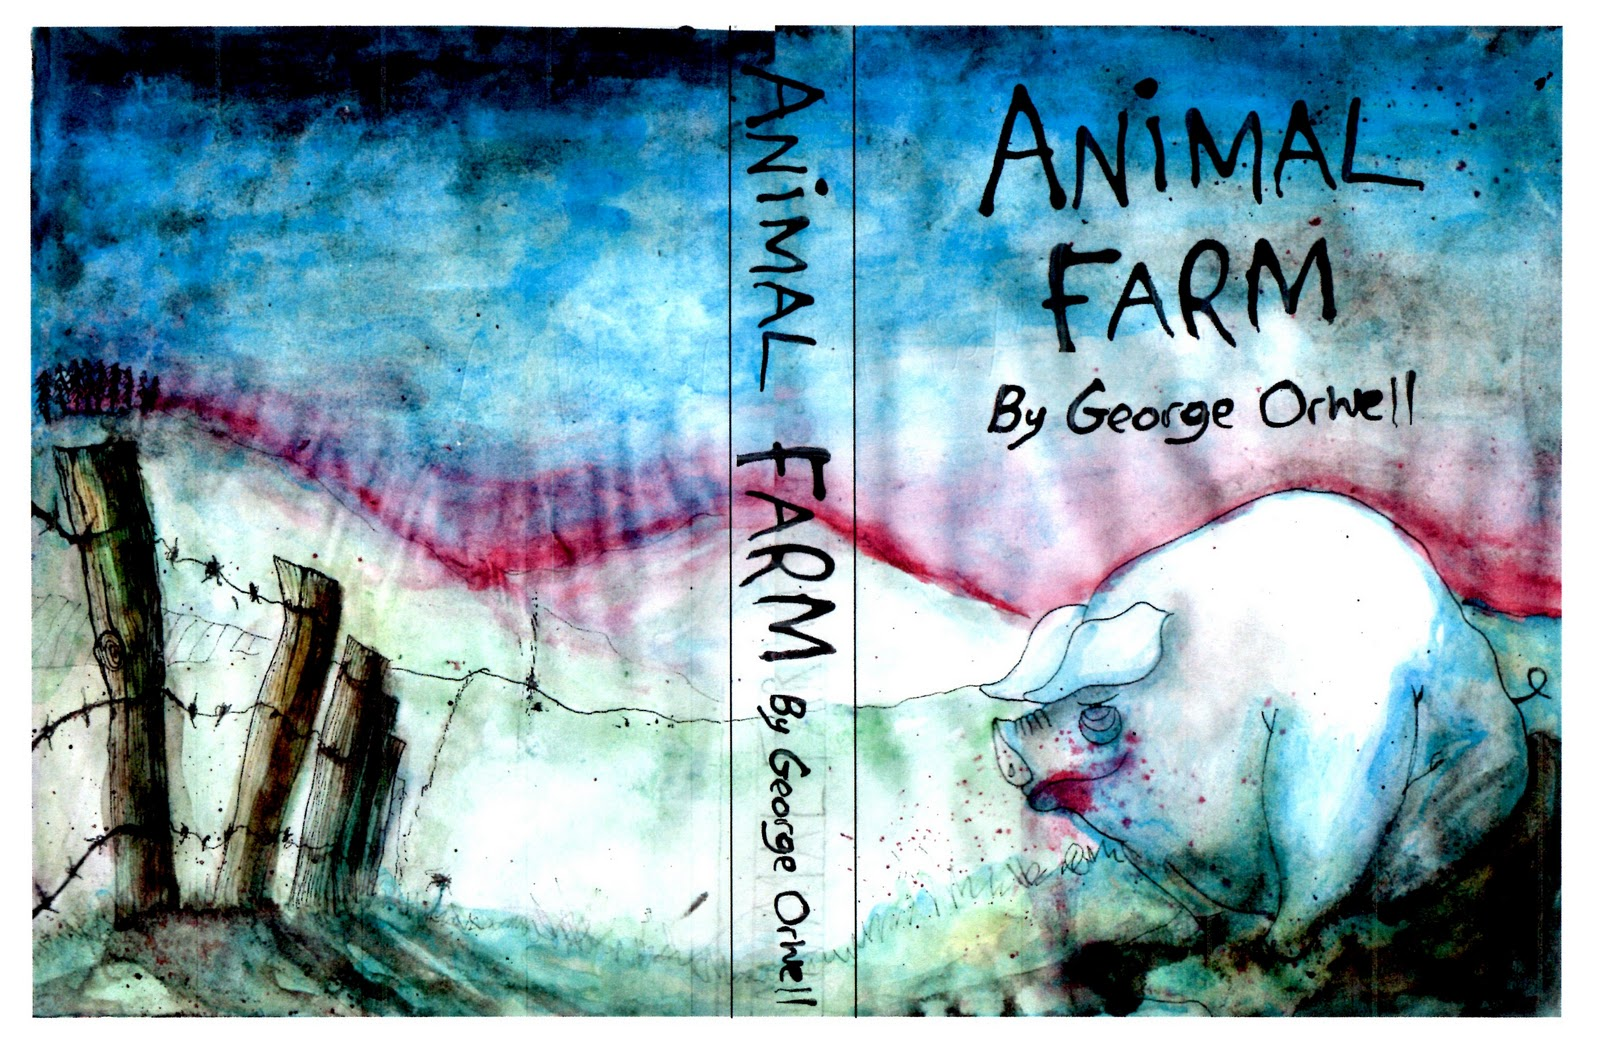 a parody of soviet communism in animal farm by george orwell Historical and literary context for george orwell's animal farm animal farm | context then stalin led the communist party in the soviet union from 1922 until.